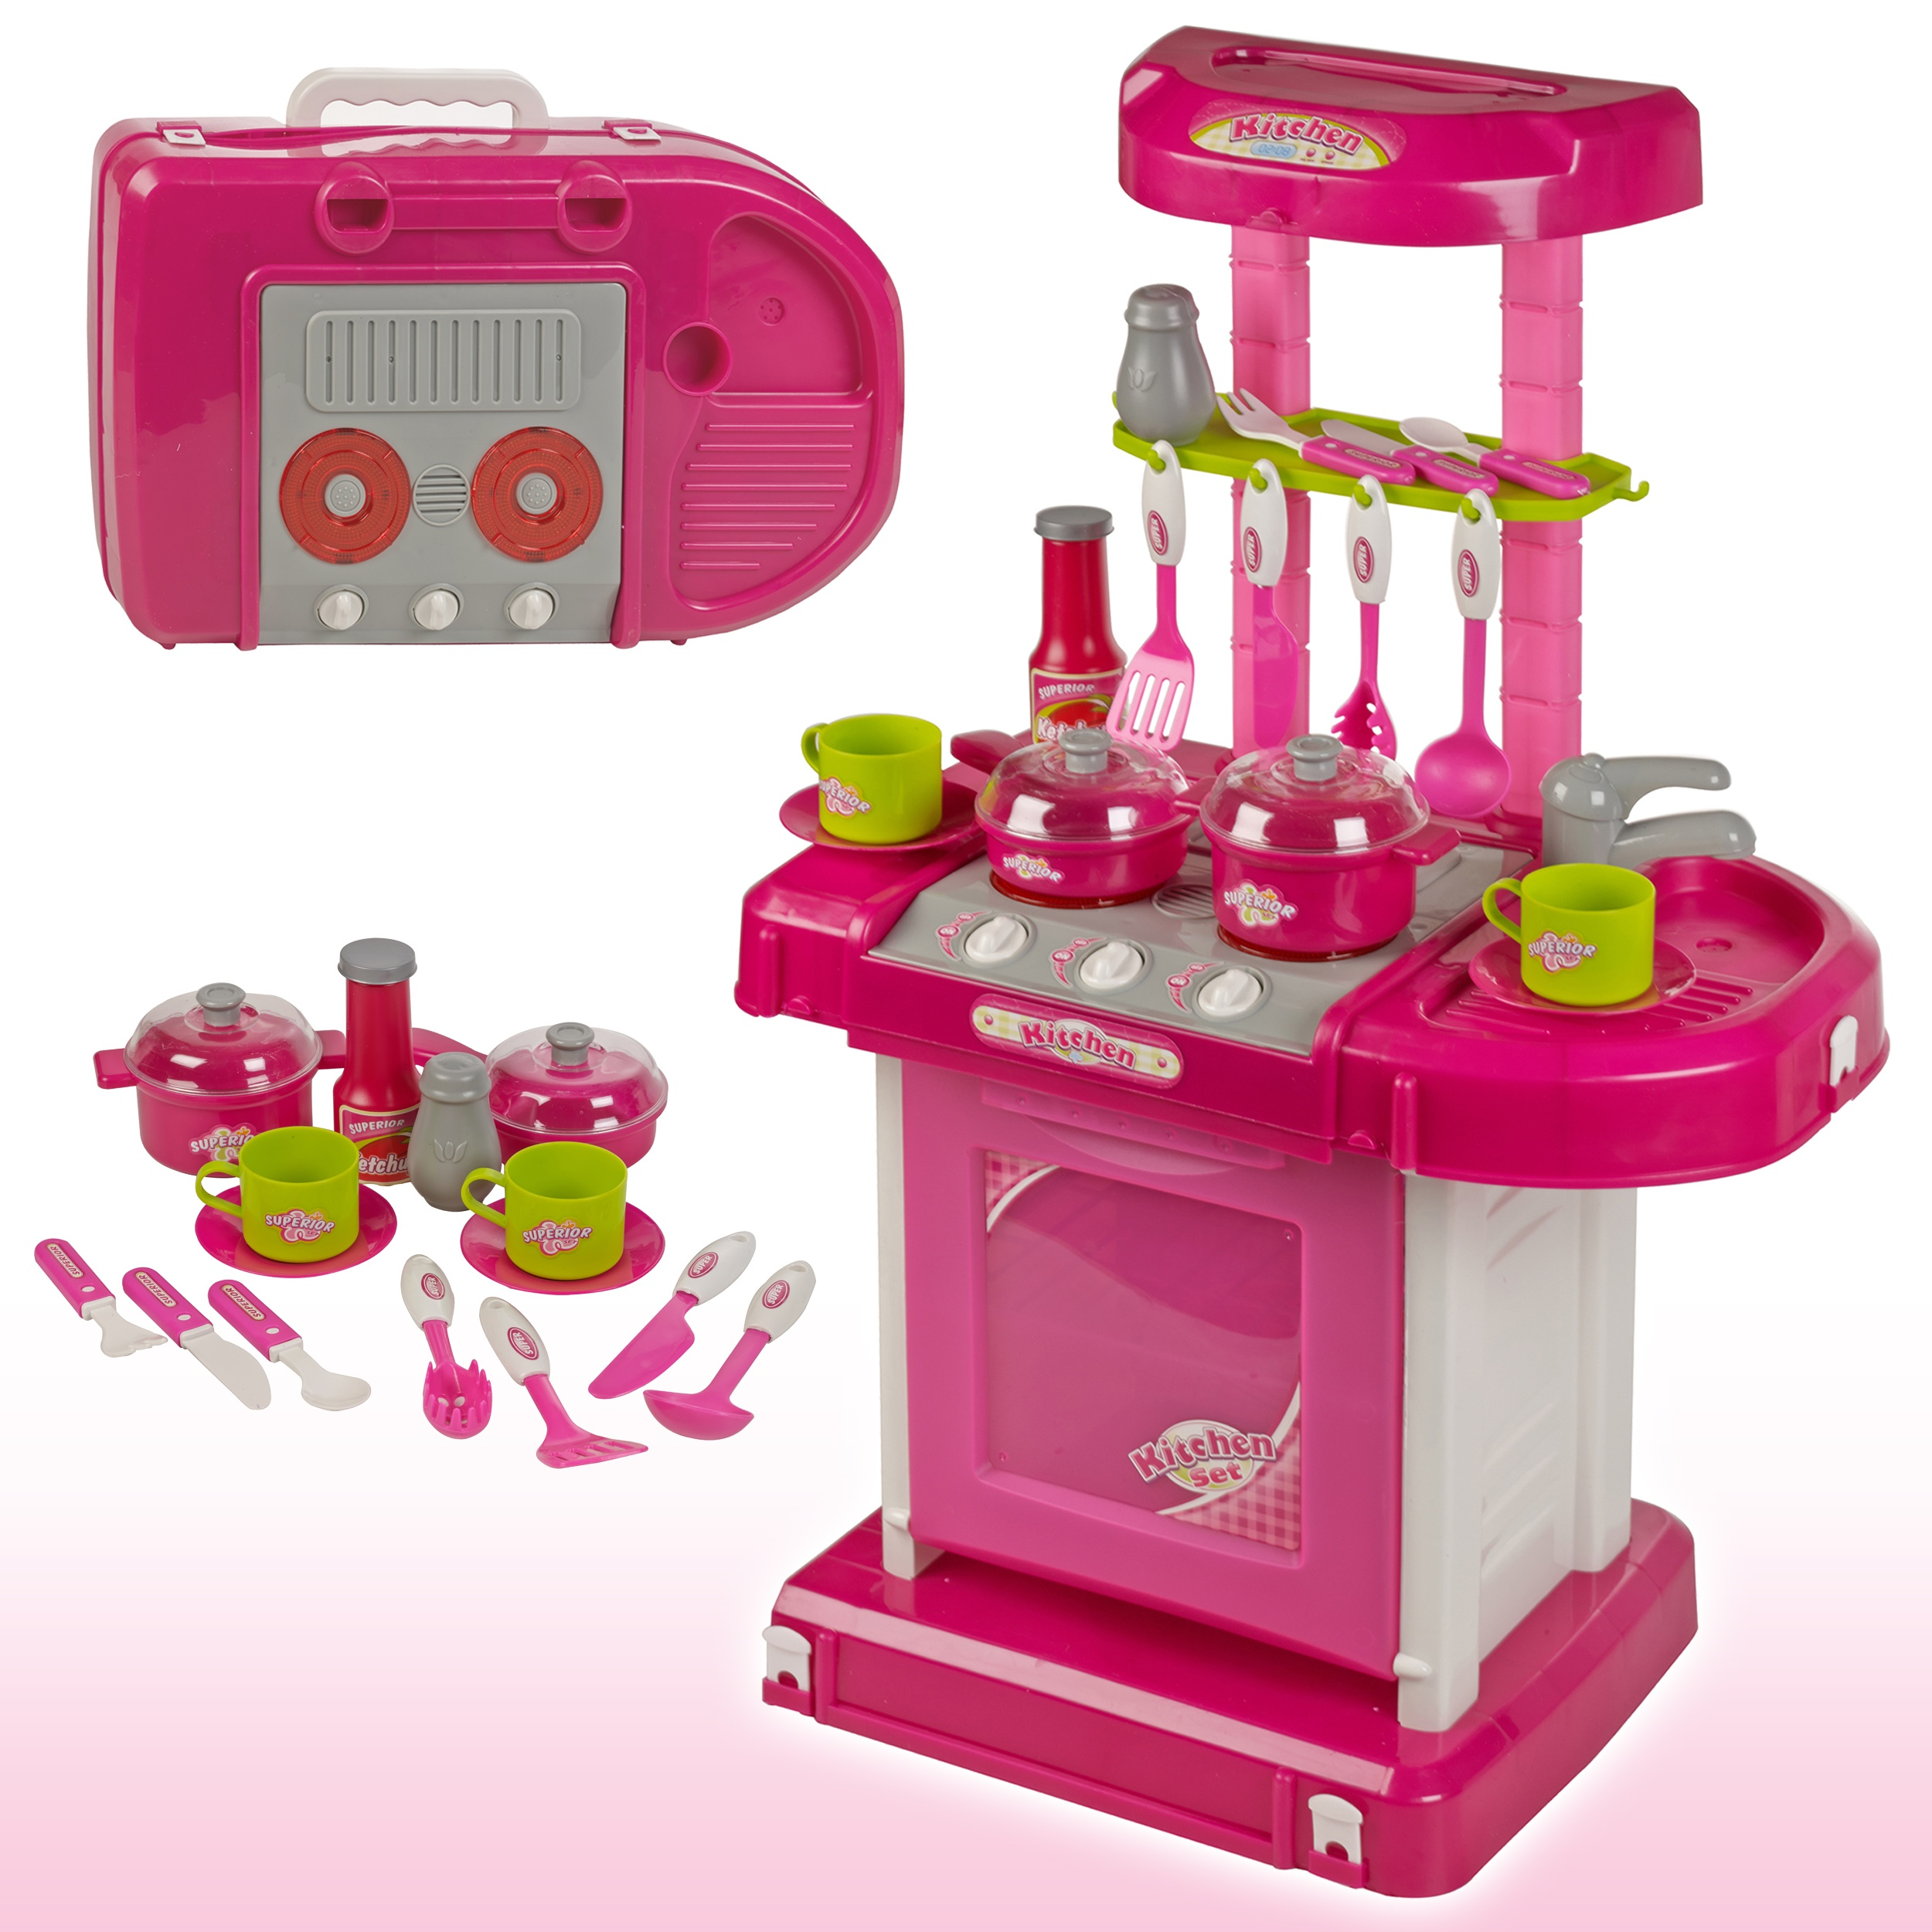 Portable kitchen play set 11street malaysia non electronic for Kitchen set portable